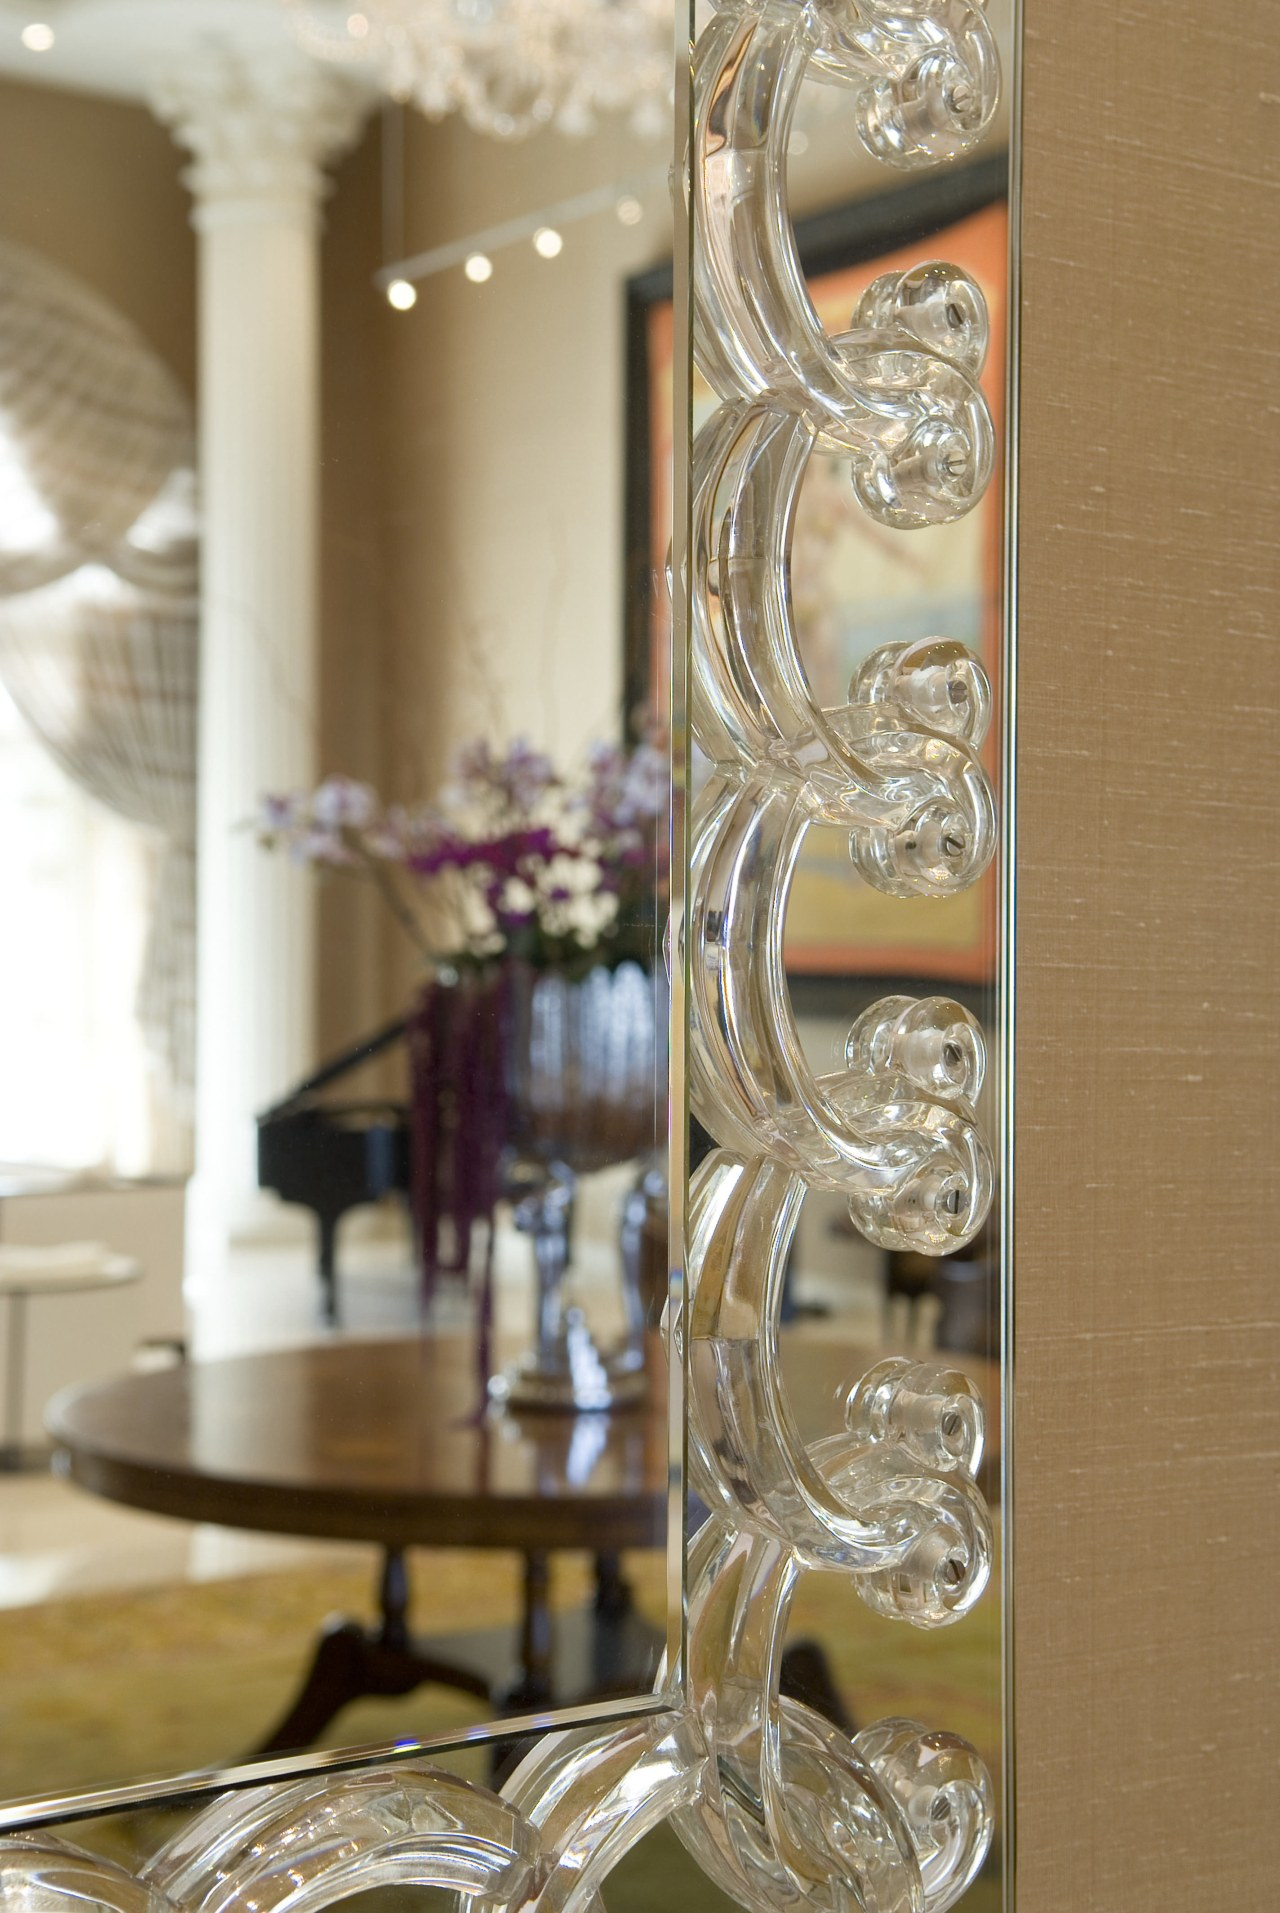 Lalique crystal is a favorite with the owners furniture, glass, interior design, brown